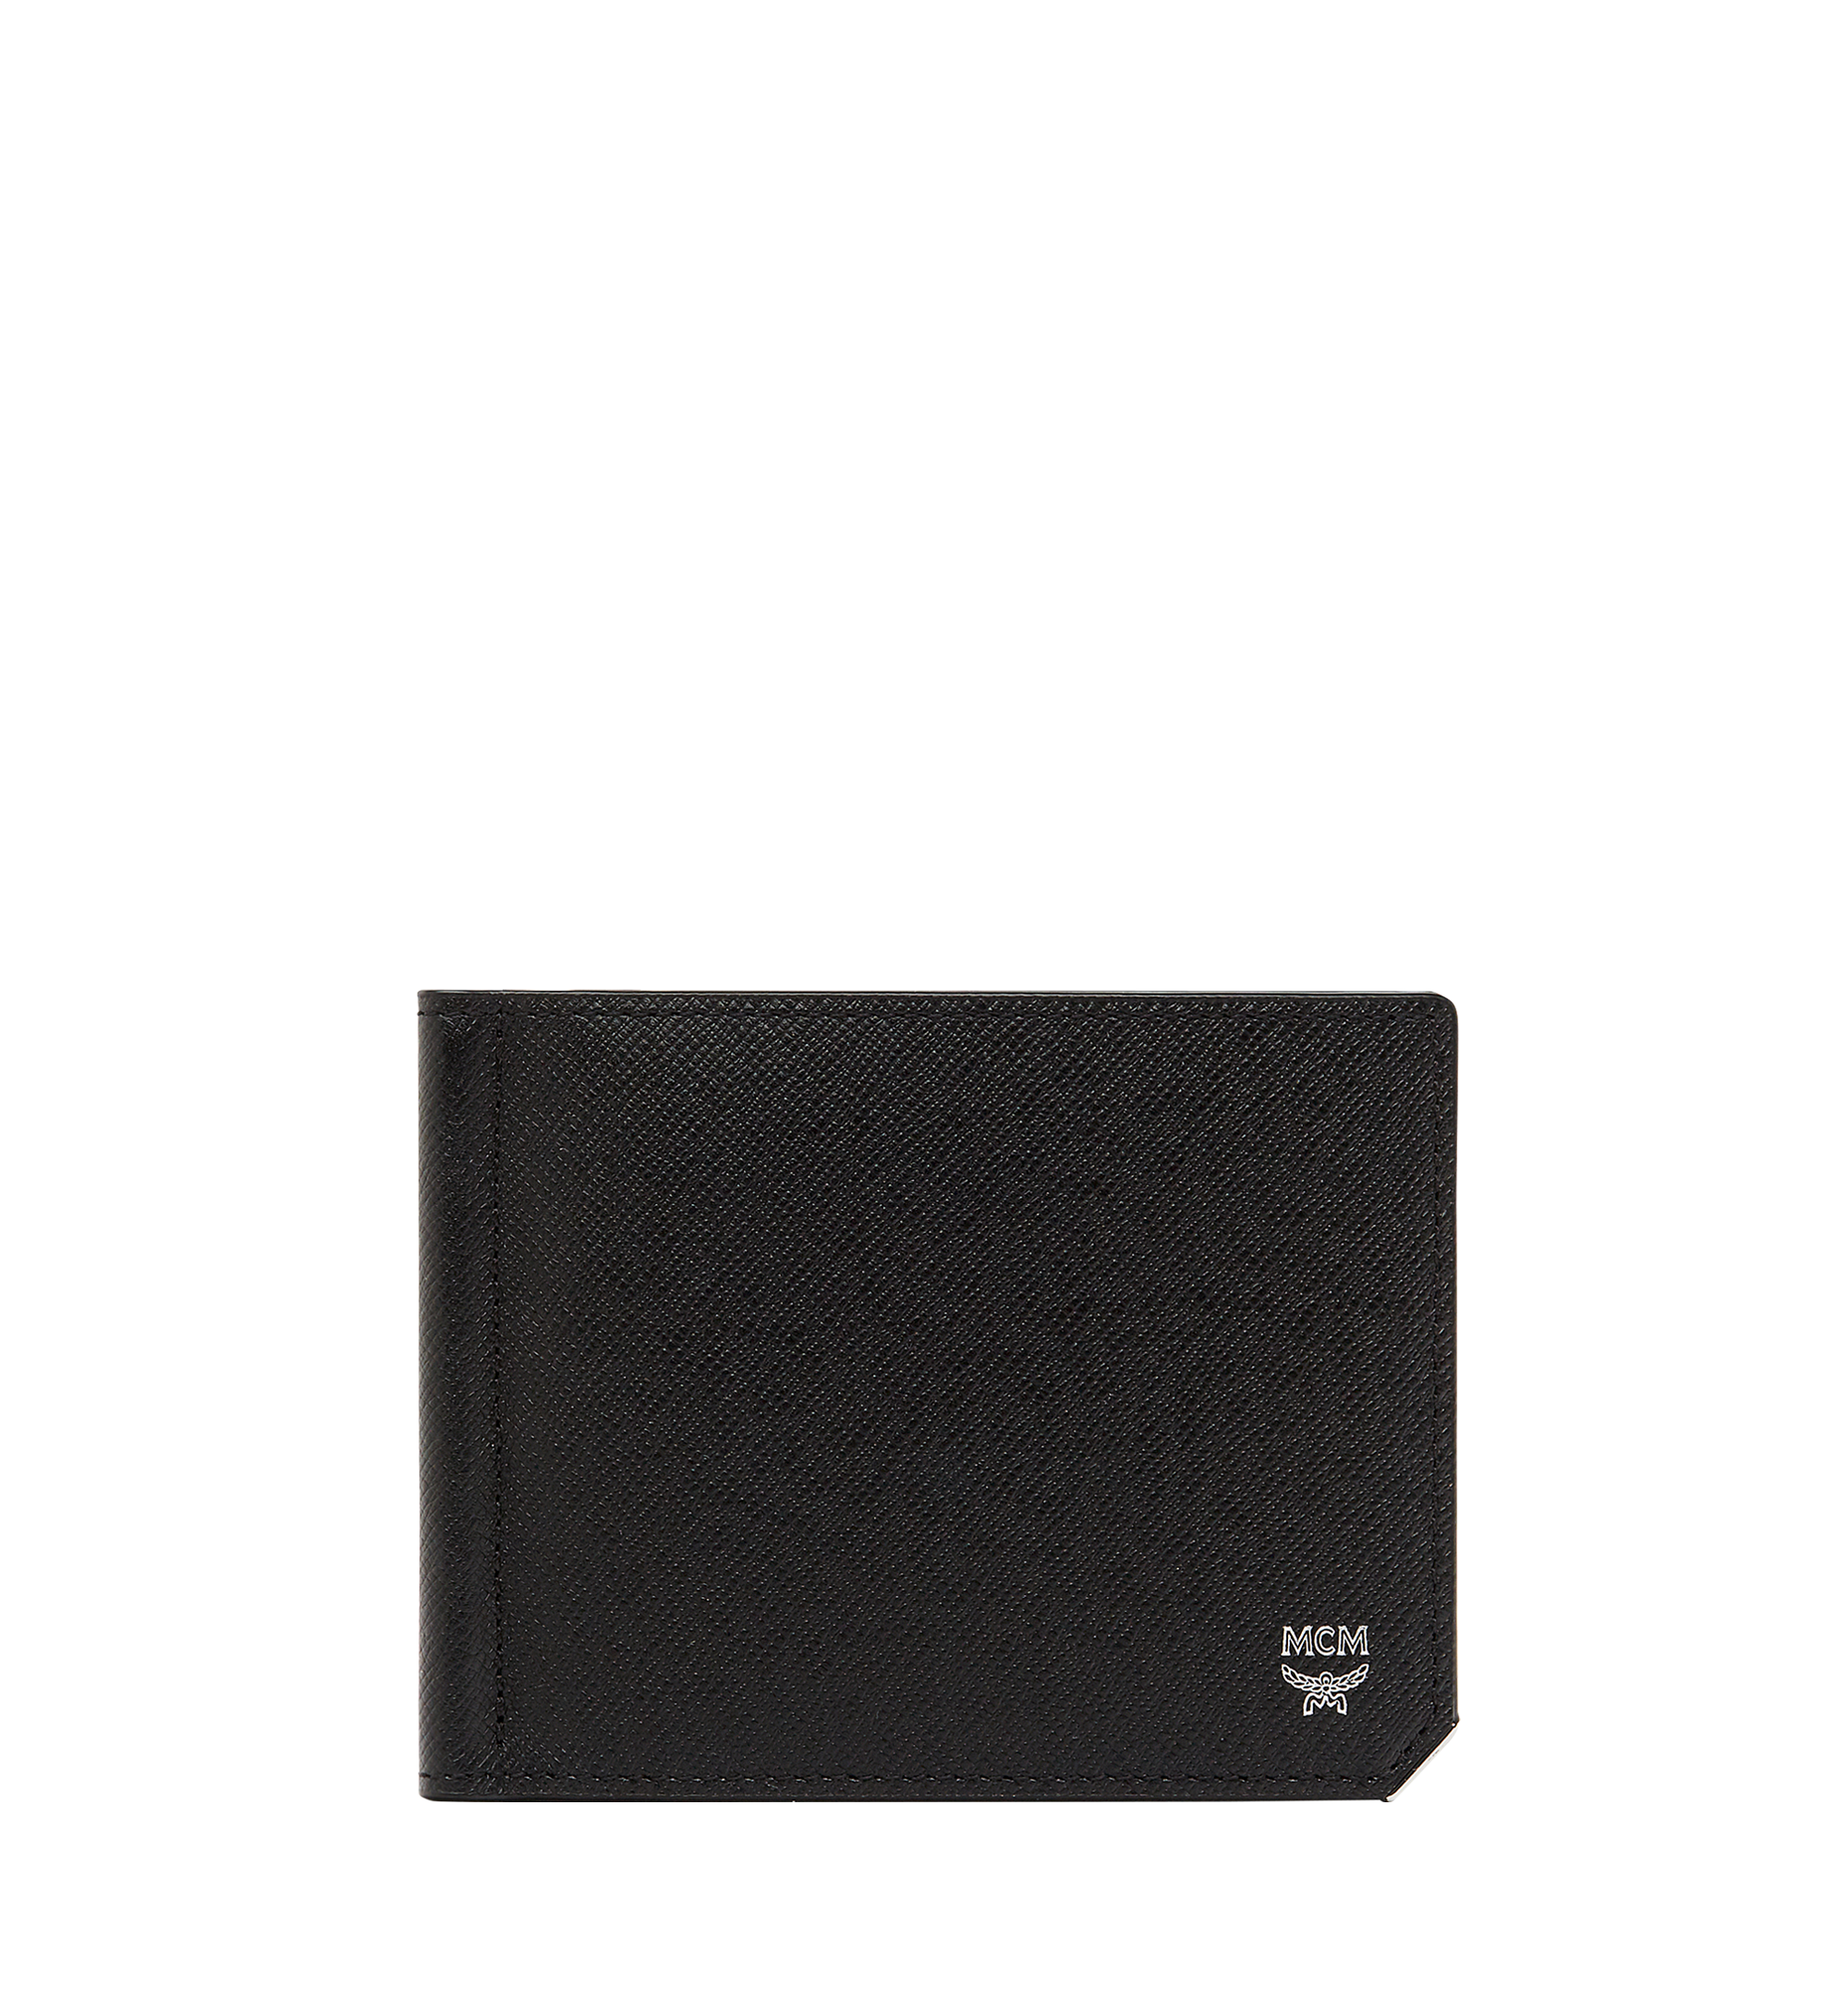 MCM New Bric Money Clip Wallet in Embossed Leather Black MXC8ALL45BK001 Alternate View 1